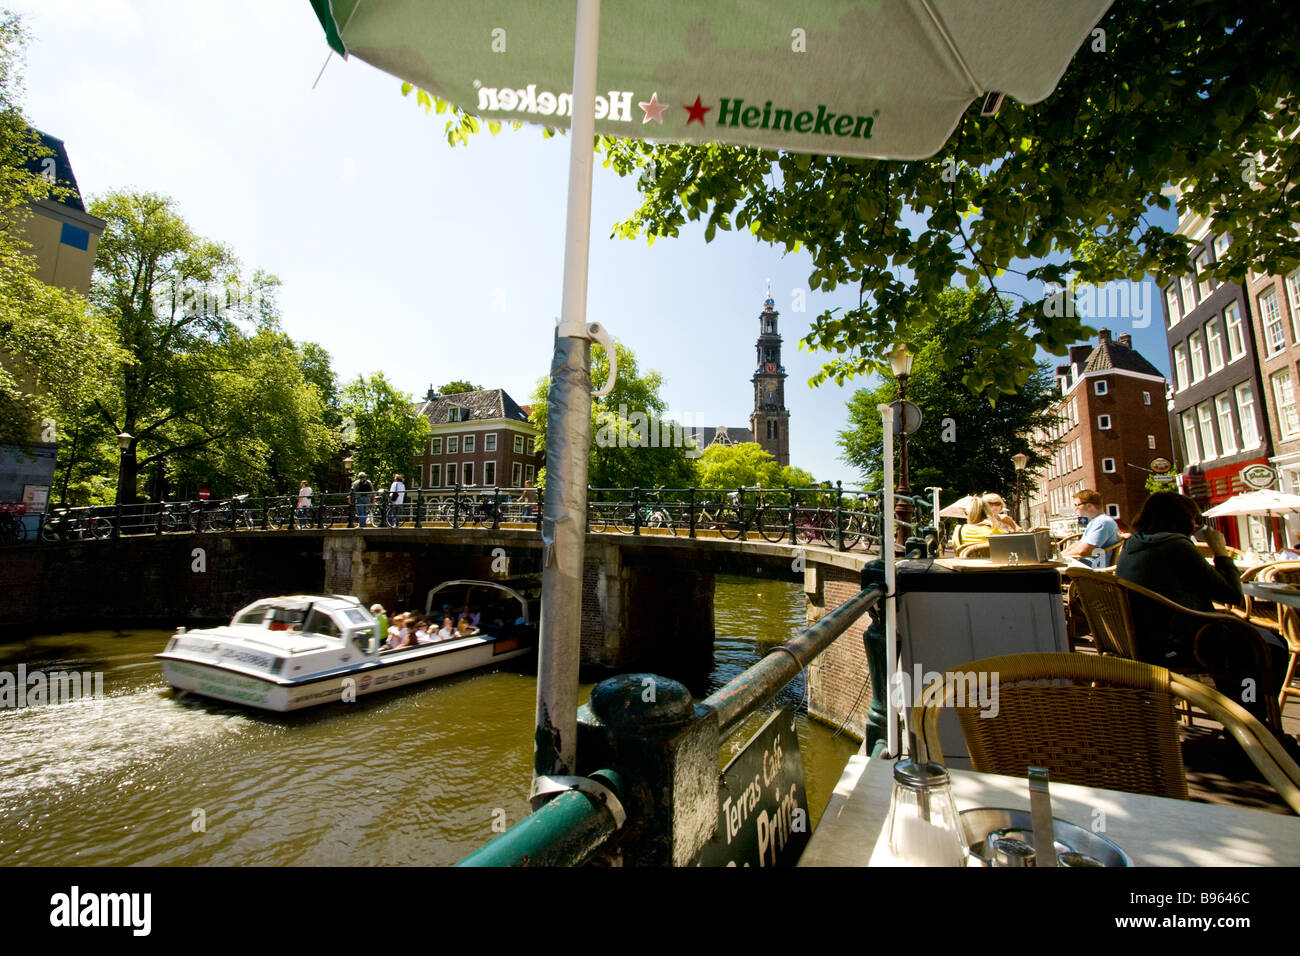 cafe prins on prinsengracht canal - Stock Image